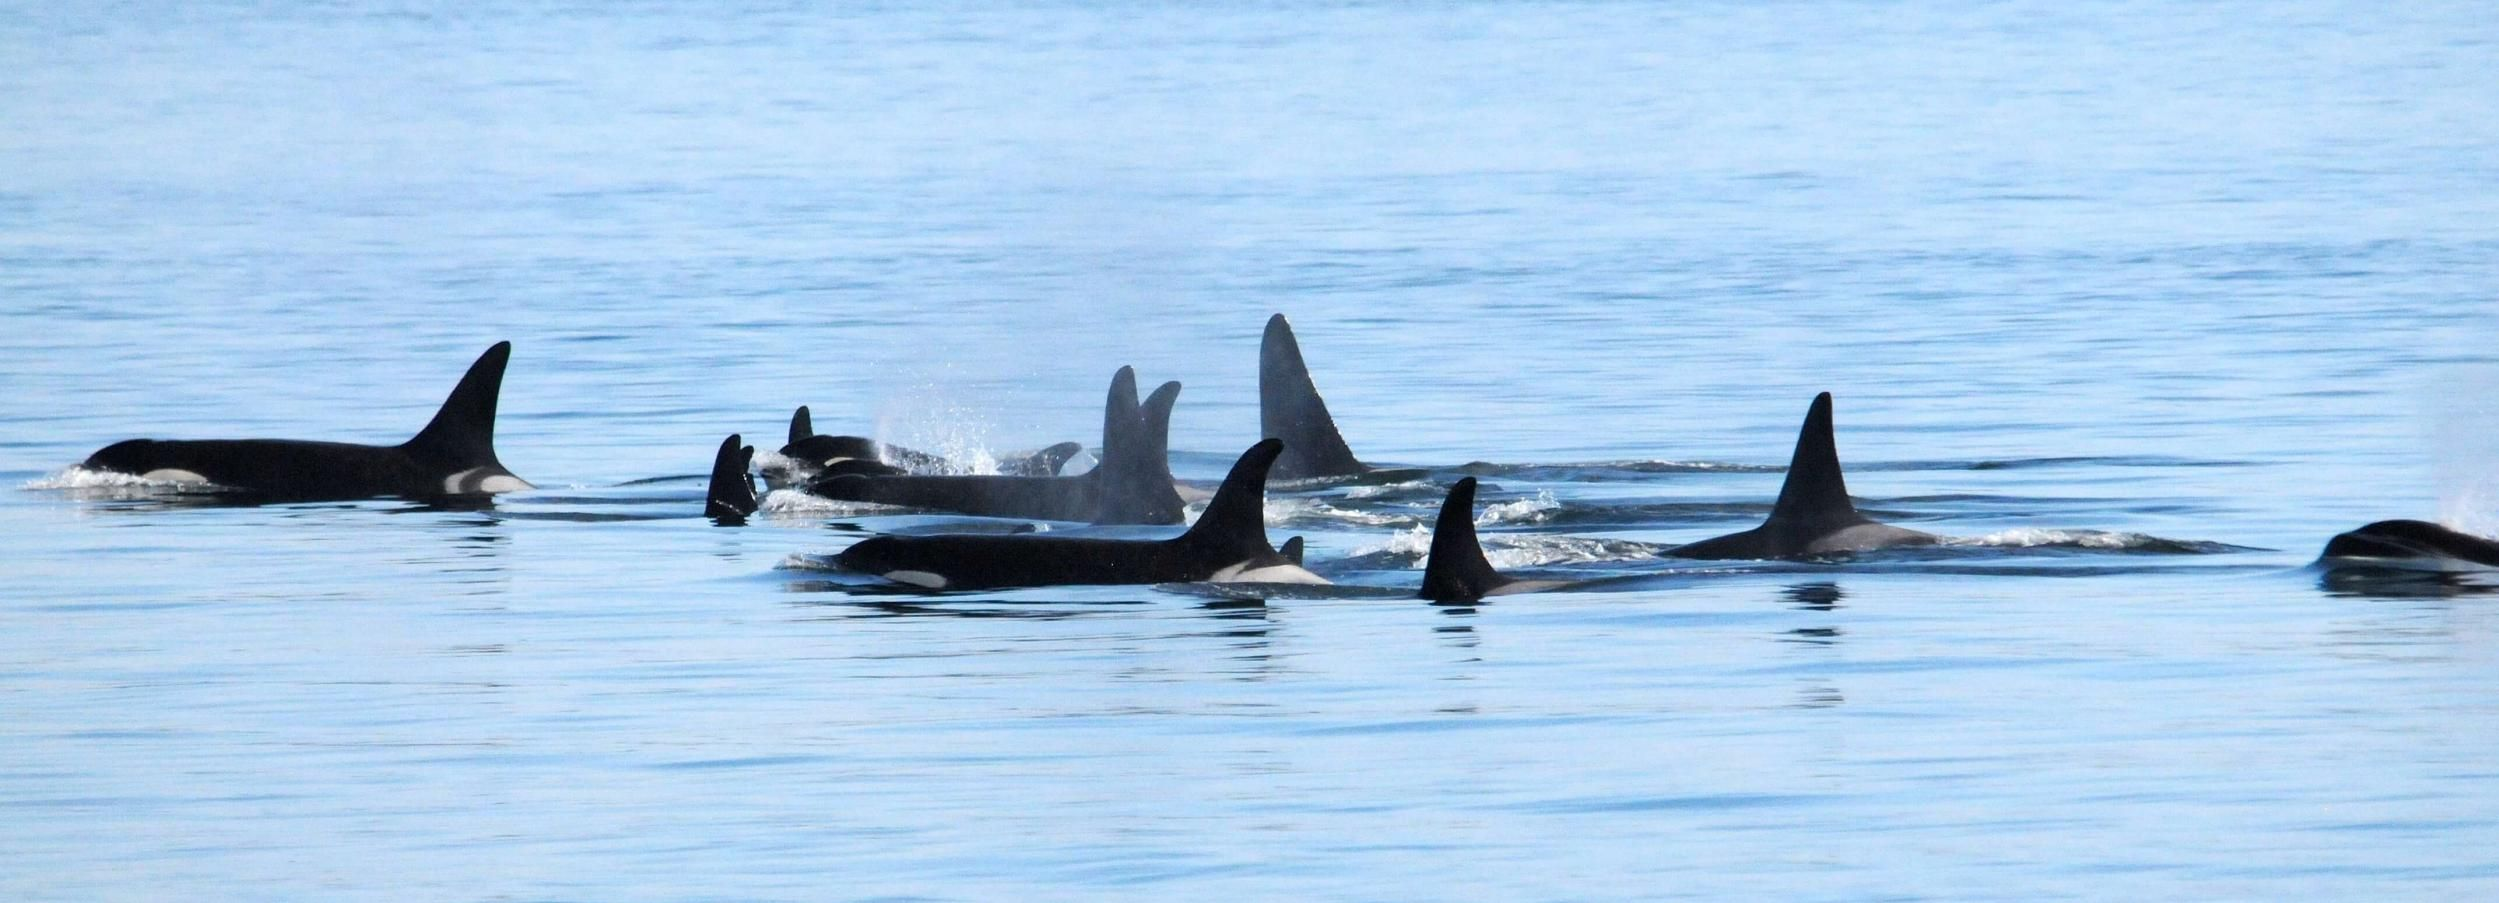 Vancouver: Whale Watching Victoria Trip & Return by Seaplane